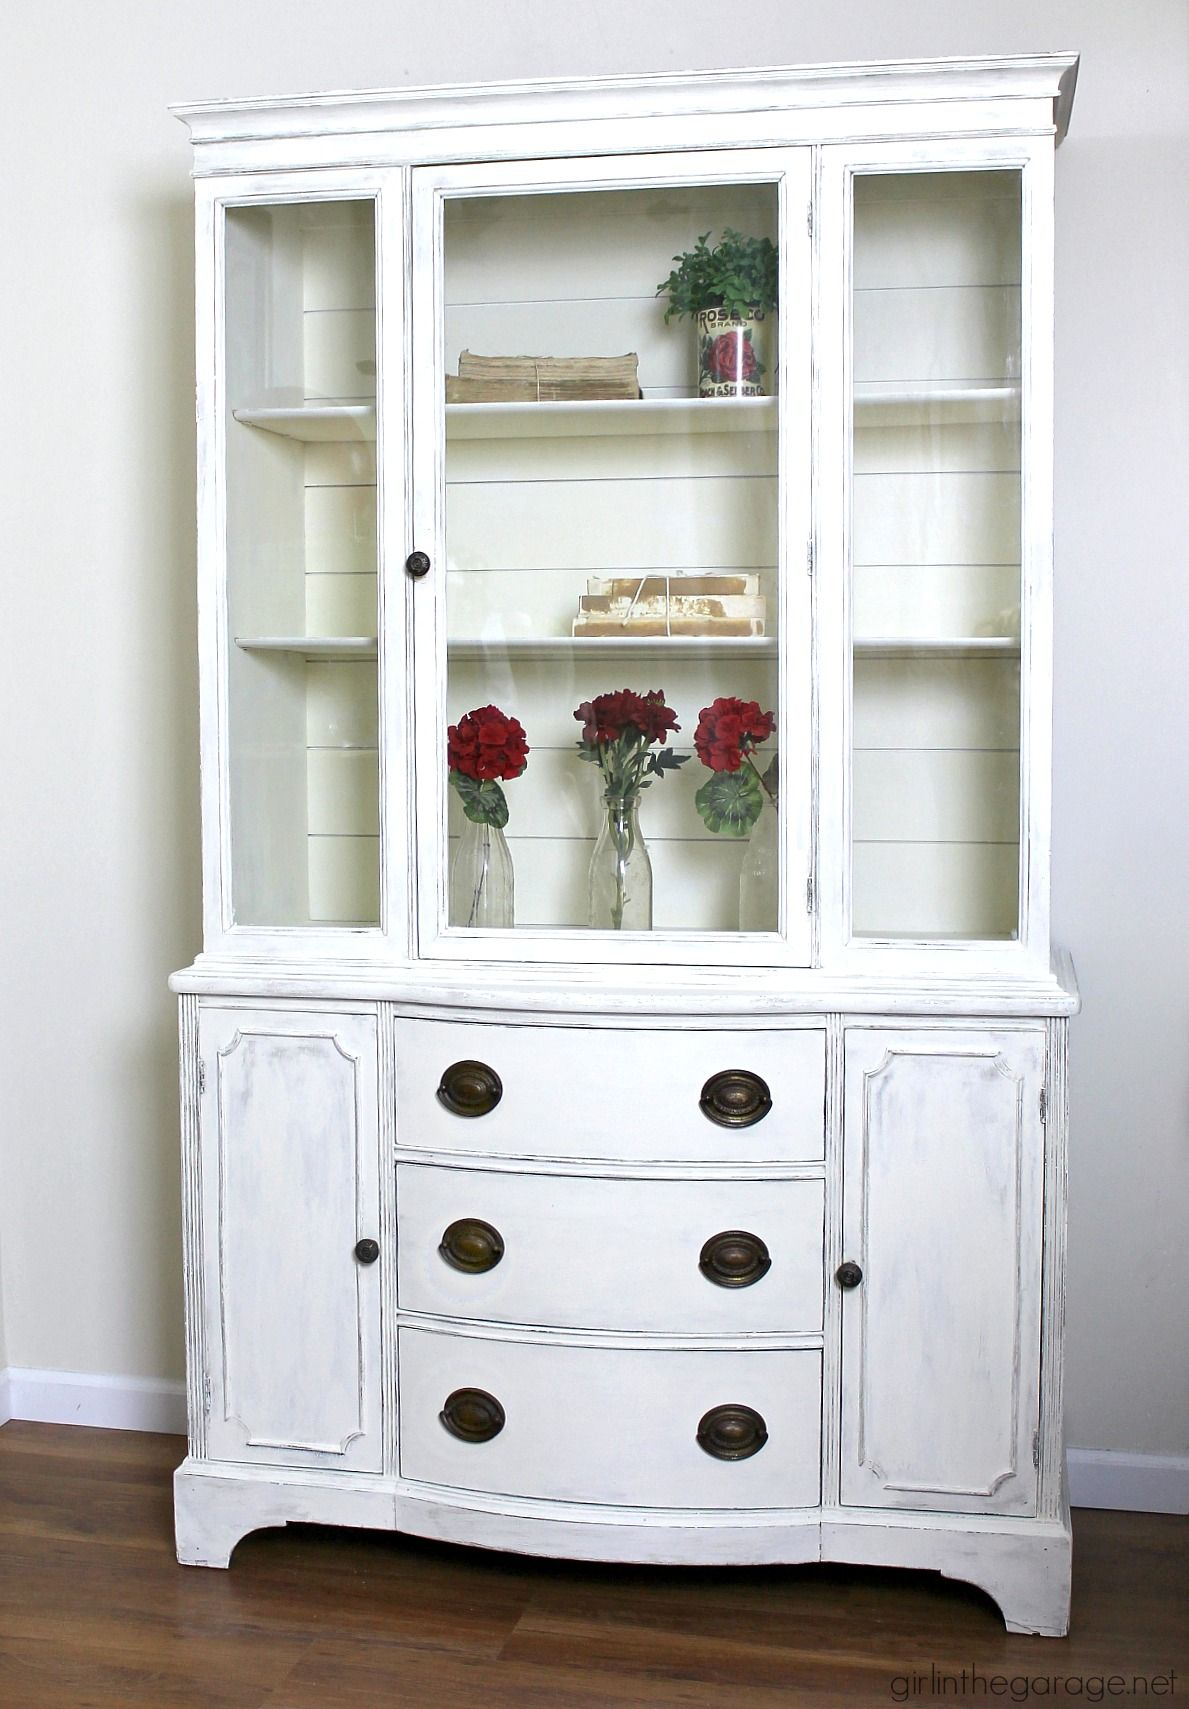 Goodwill antique china cabinet makeover with chalk paint and shiplap for a fresh farmhouse look diy tutorial by girl in the garage